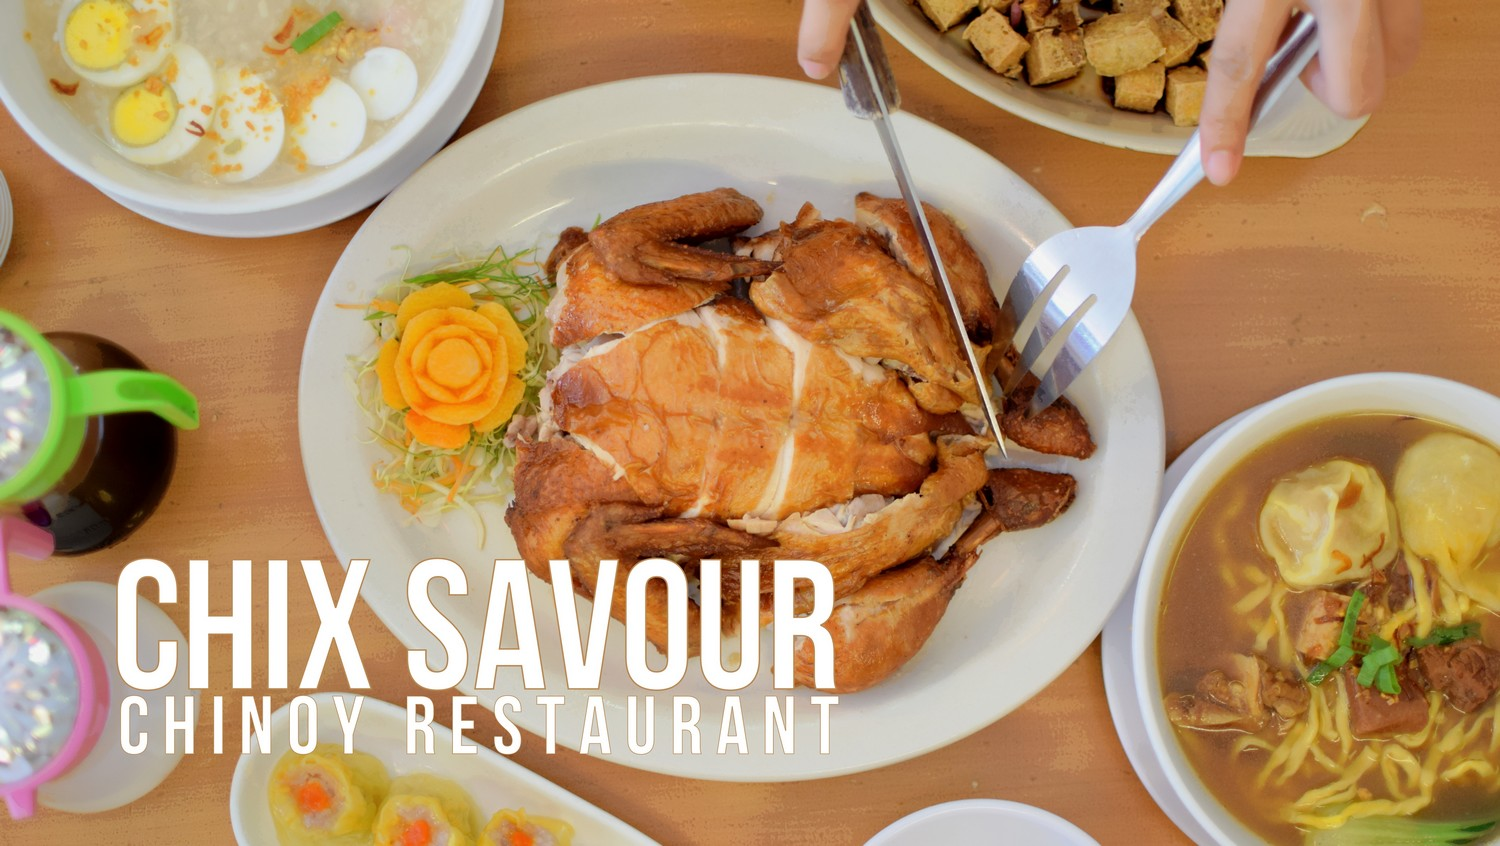 Chix Savour: Your Budget-Friendly Chinoy Restaurant